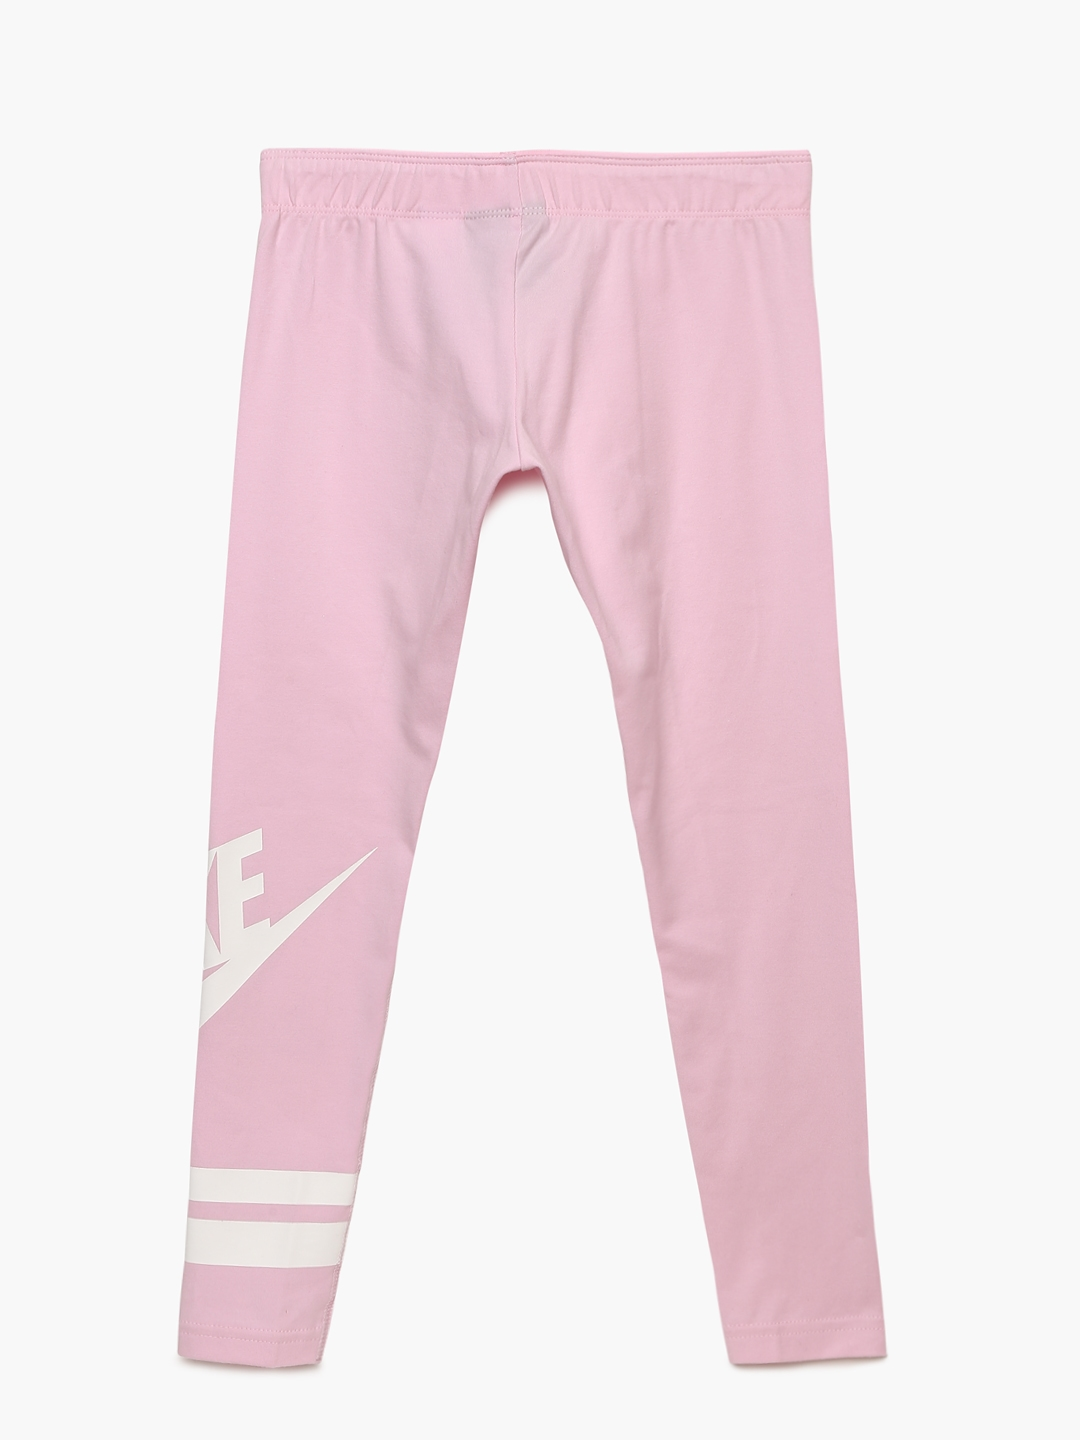 60e7e59119 Buy Nike Girls Pink NSW FAVORITE GX3 Tights - Tights for Girls ...